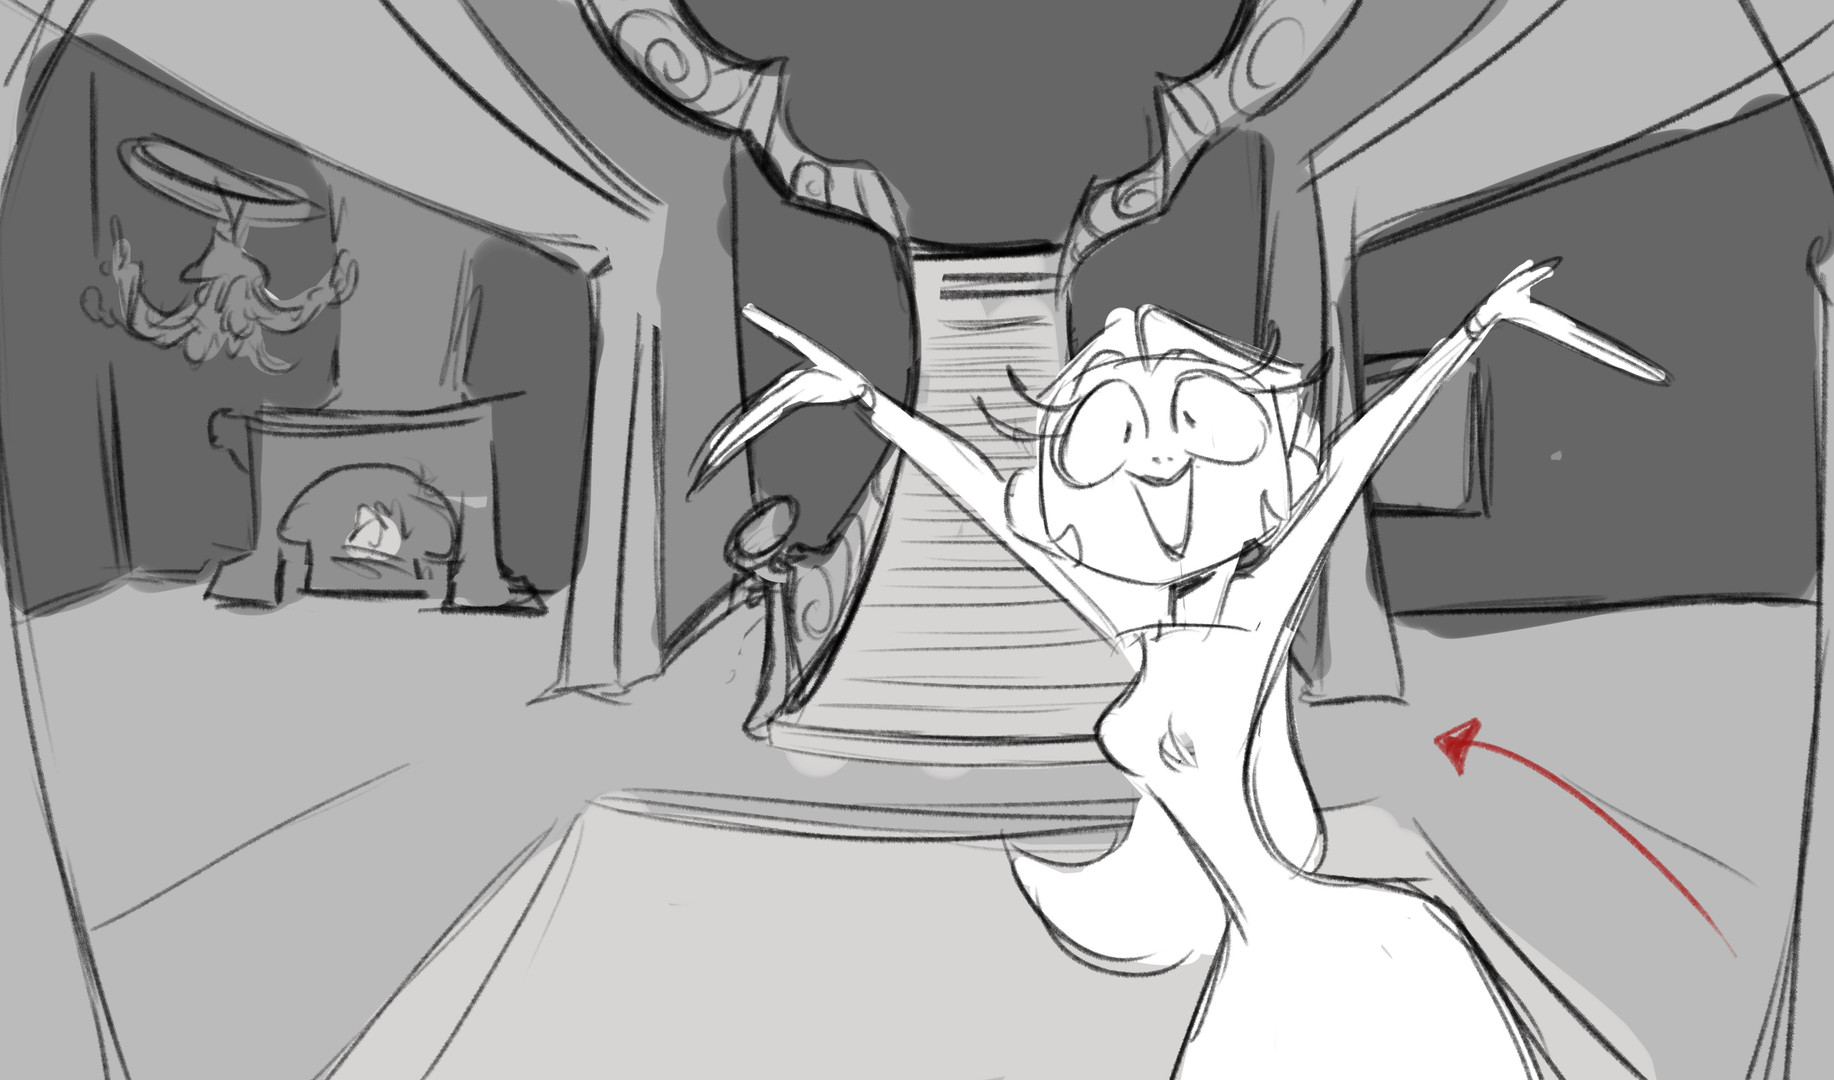 STORYBOARD - B - _0005_Layer Comp 6.jpg